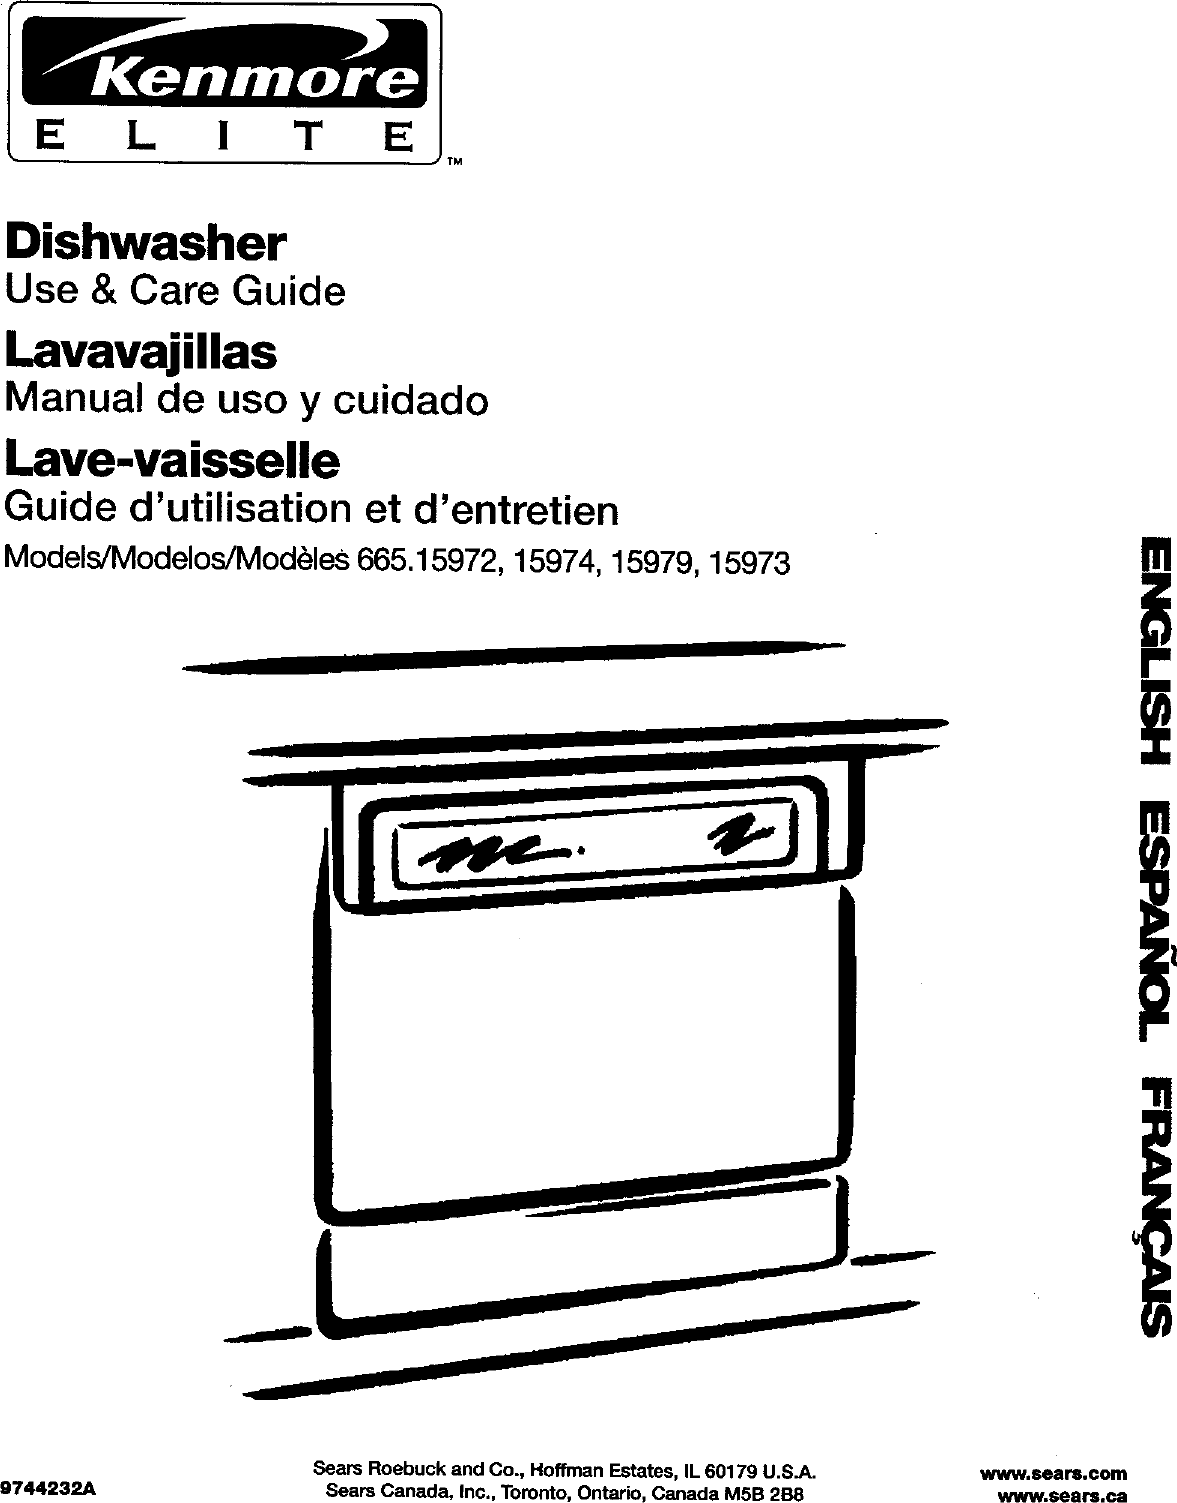 Kenmore 66515973992 User Manual DISHWASHER Manuals And